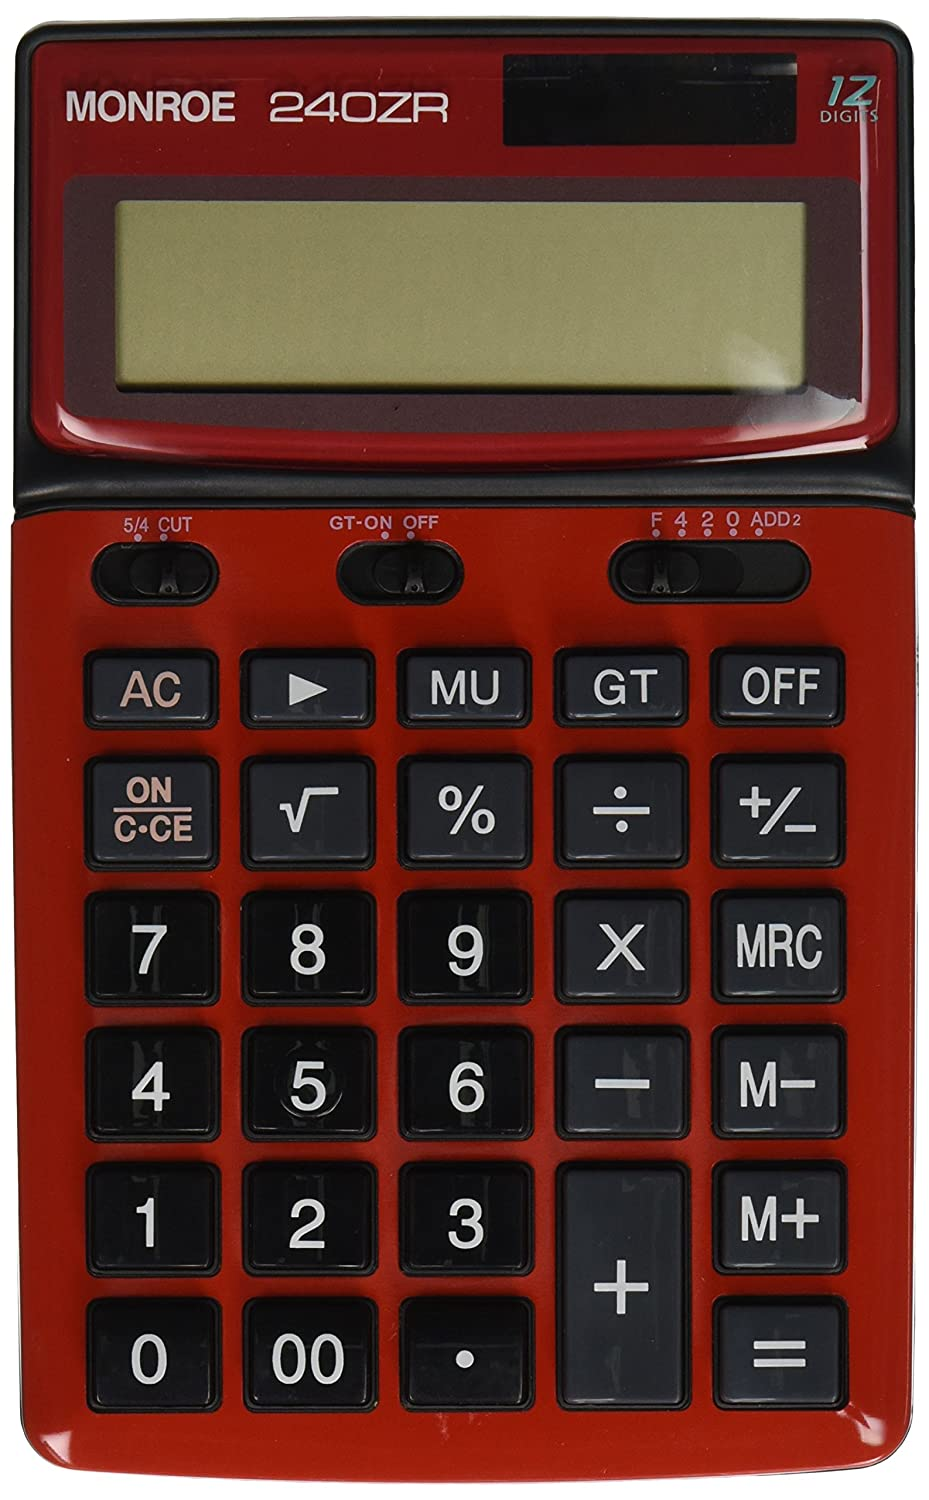 Monroe Systems for Business Monroe 240Z Red Handheld Calculator. Commercial-Grade 12-Digit Handheld Battery/Solar Powered Calculator with Large Digits and tilt able Display. 240ZR